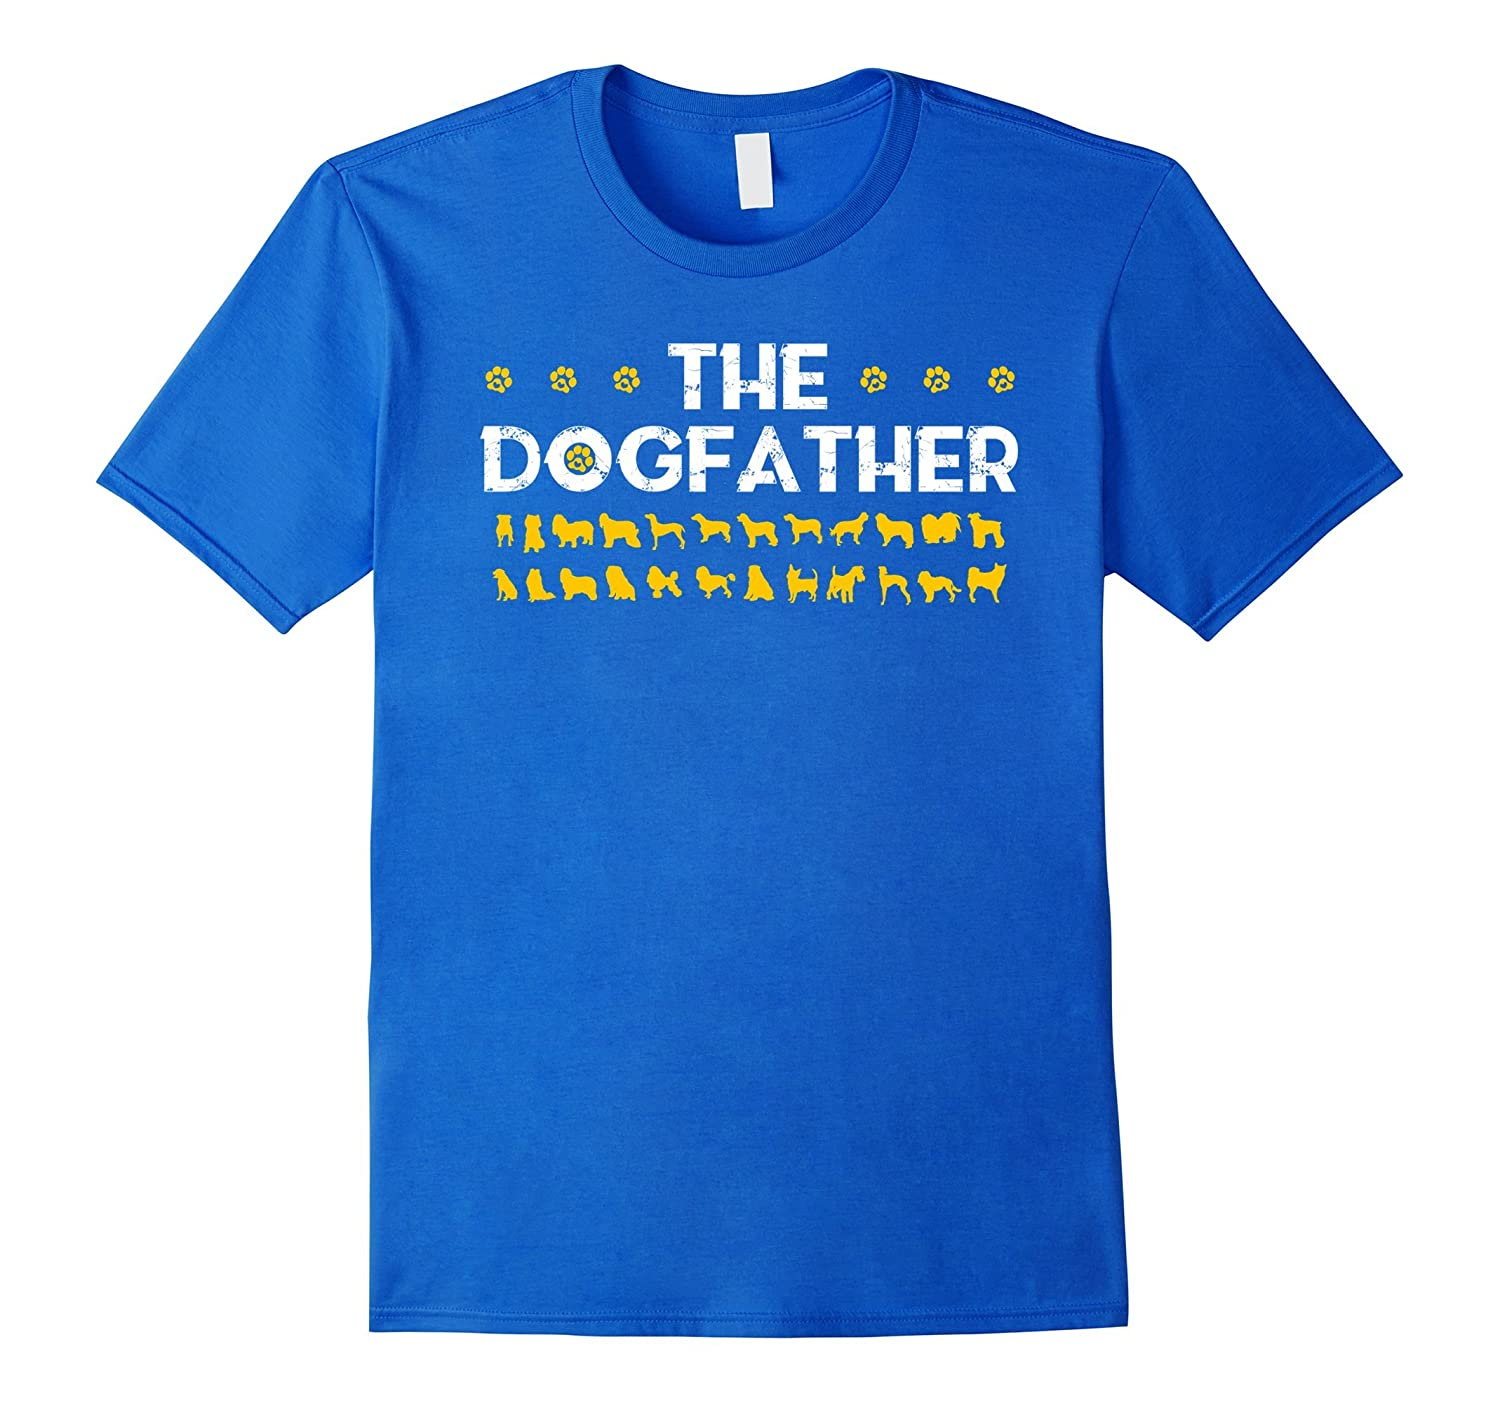 Mens The Dogfather t-shirt great gift Funny dogfather